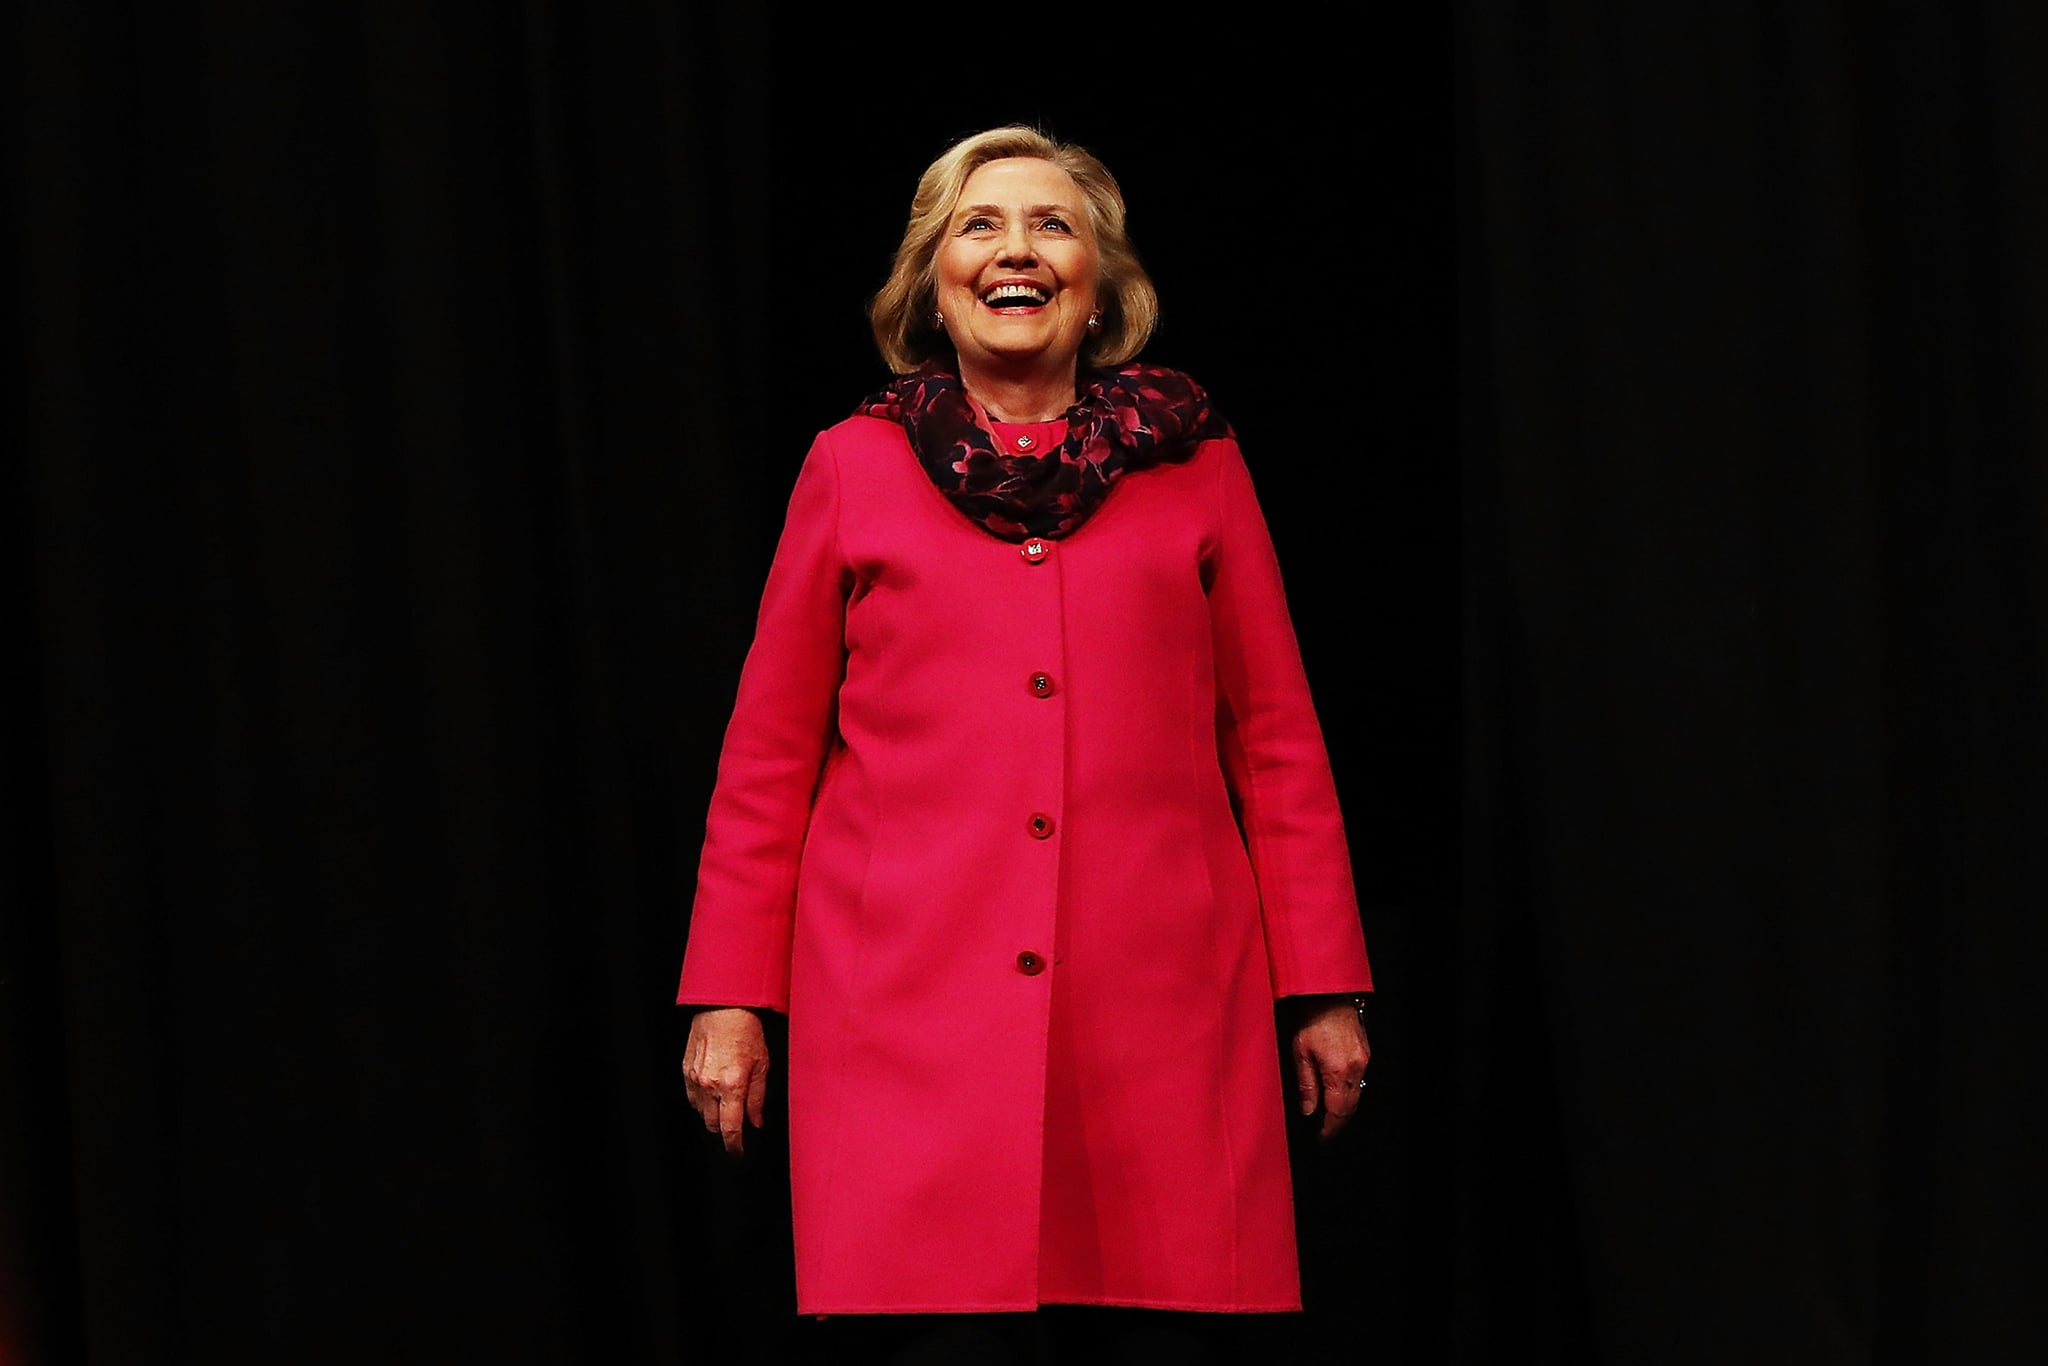 AUCKLAND, NEW ZEALAND - MAY 07:  (EDITOR'S NOTE: Alternative crop of image #955549888) Hillary Rodham Clinton arrives to speak during An Evening with Hillary Rodham Clinton at Spark Arena on May 7, 2018 in Auckland, New Zealand. The former US Secretary of State and Democratic presidential candidate, who lost the 2016 US election to Donald Trump, is touring Australia and New Zealand speaking about being a women in politics.  (Photo by Hannah Peters/Getty Images)